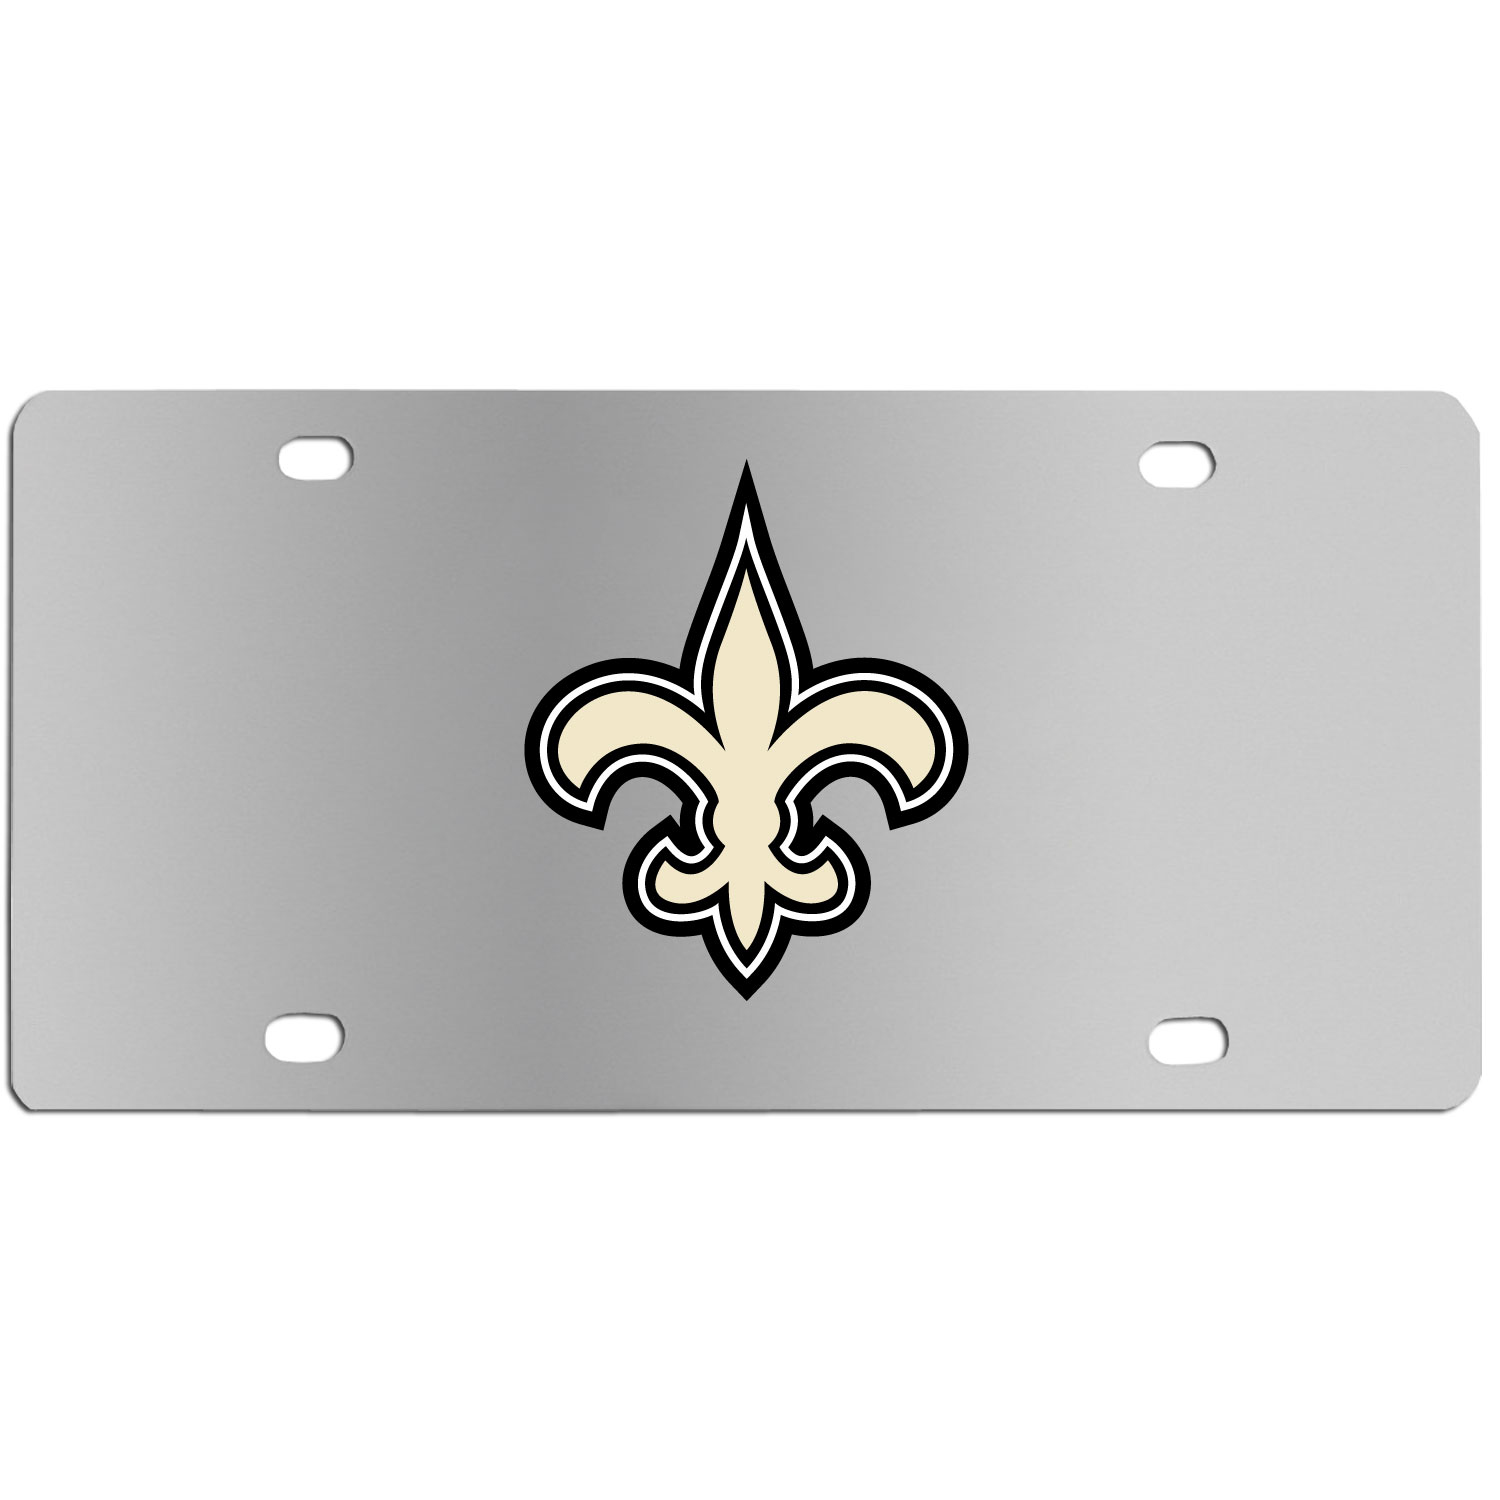 New Orleans Saints Steel License Plate Wall Plaque - This high-quality stainless steel license plate features a detailed team logo on a the polished surface. The attractive plate is perfect for wall mounting in your home or office to become the perfect die-hard New Orleans Saints fan decor.